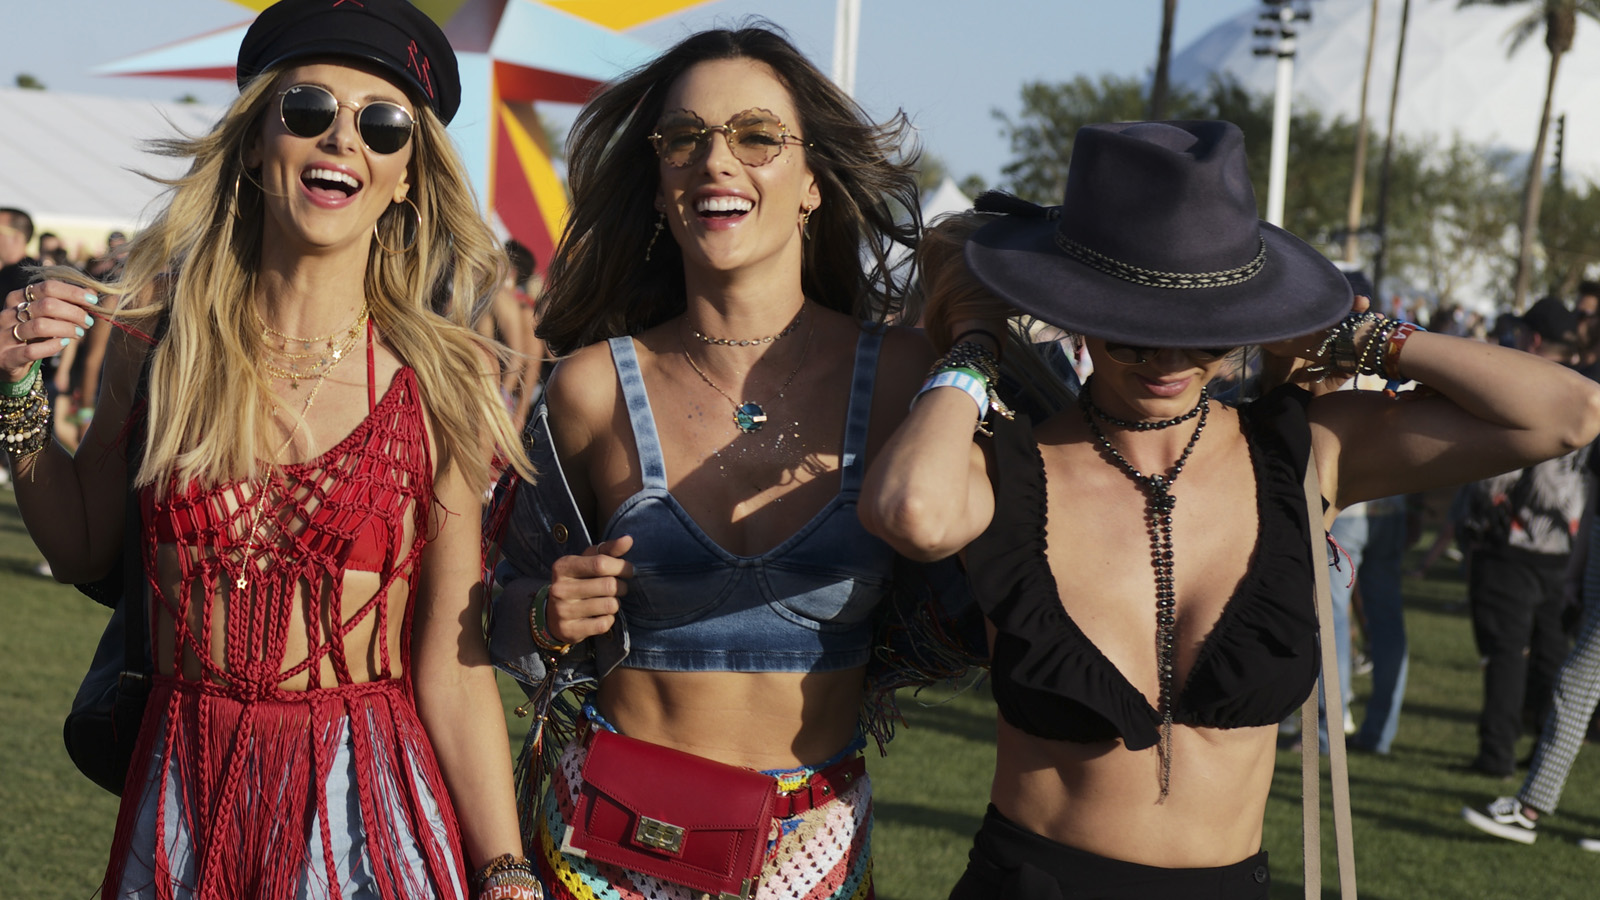 cf86765860f7d Coachella  How festival fashion became generic - CNN Style